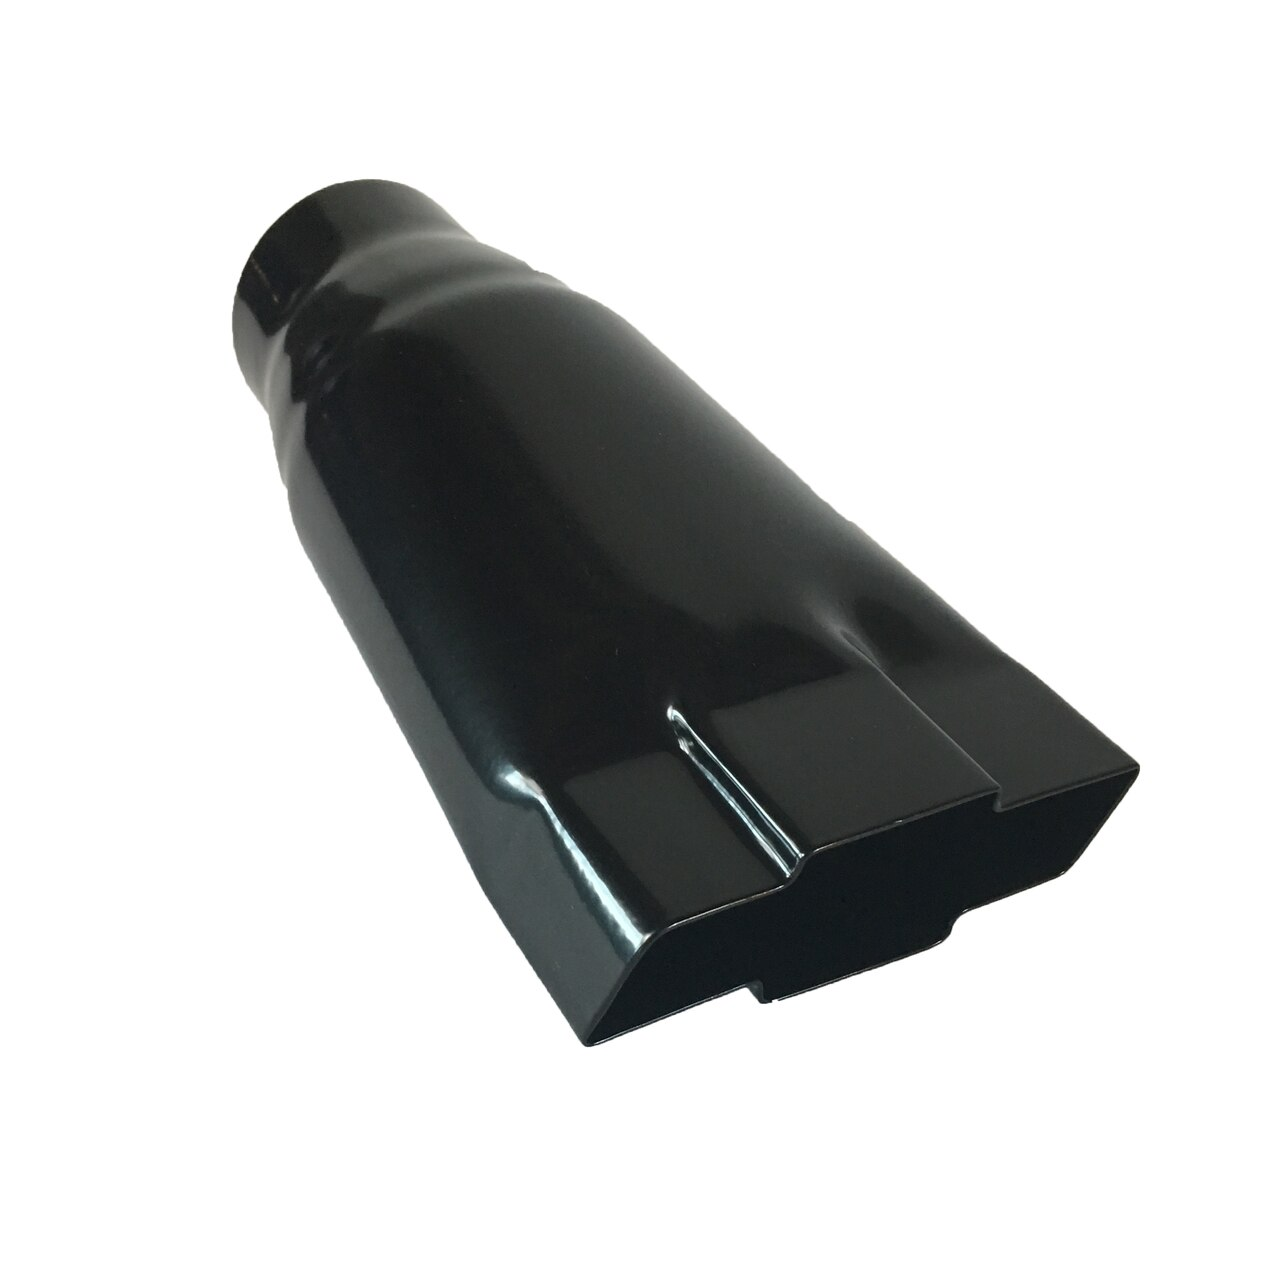 exhaust tip 4 75 outlet 9 00 long 2 25 inlet chevy black bowtie stainless wesdon exhaust tip walmart com